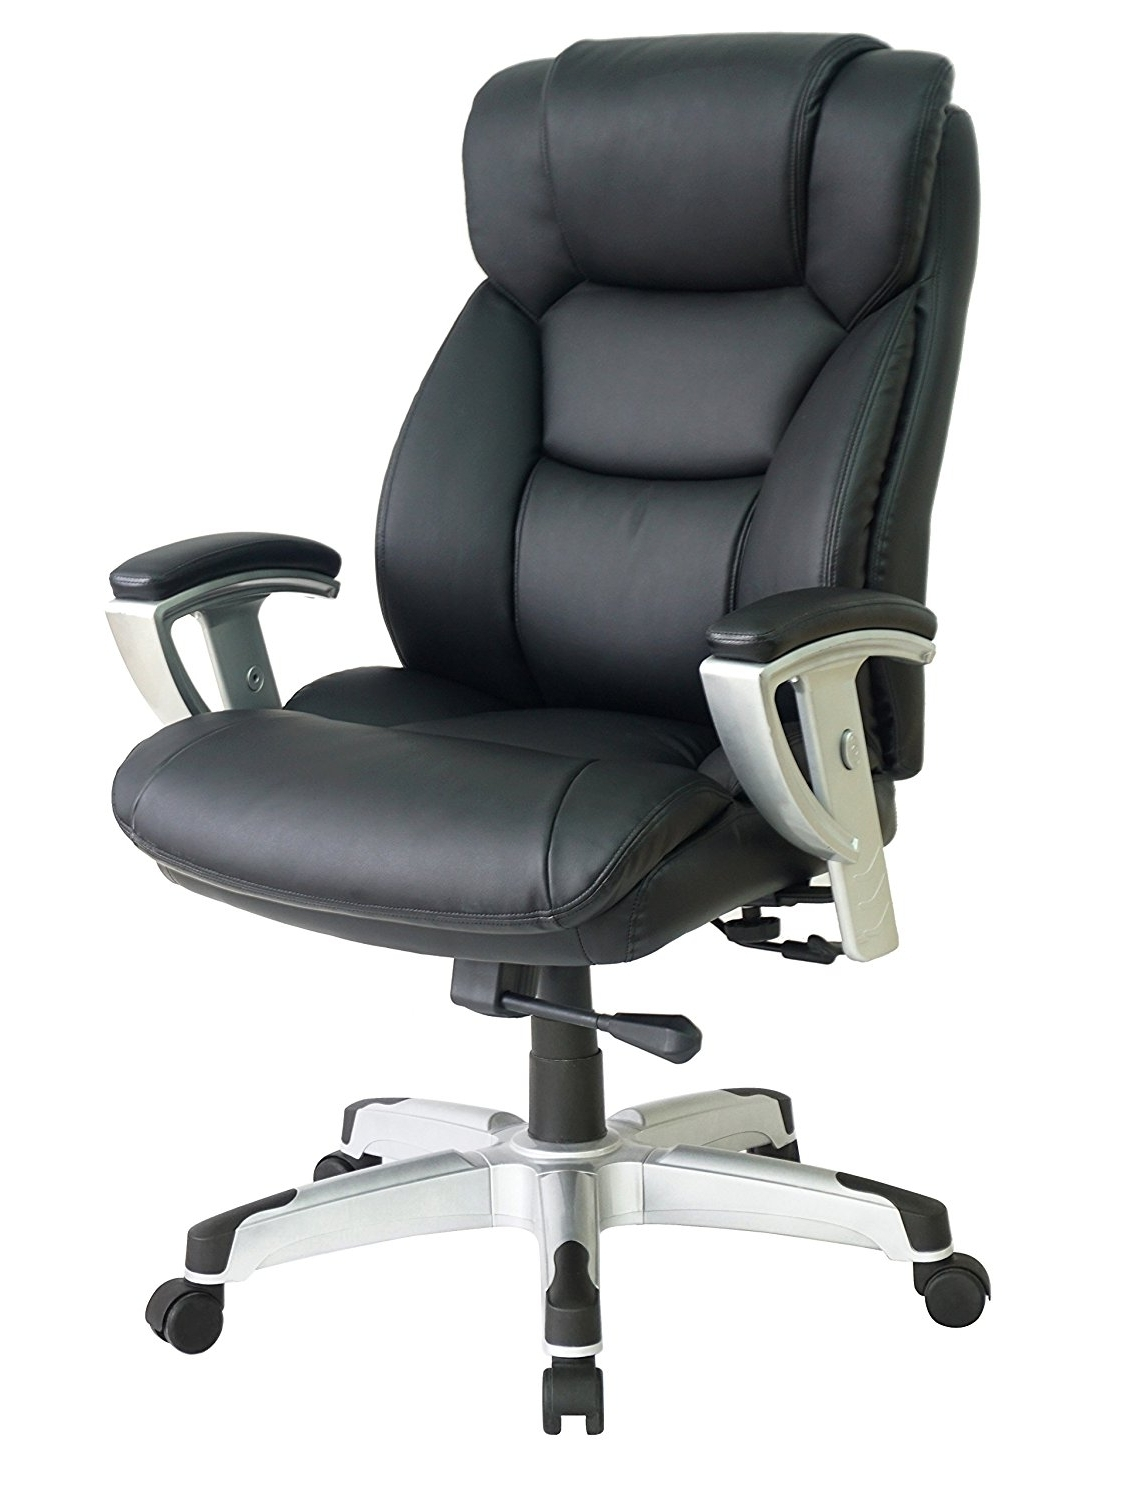 Popular 10 Big & Tall Office Chairs For Extra Large Comfort With Regard To Big And Tall Executive Office Chairs (View 11 of 20)